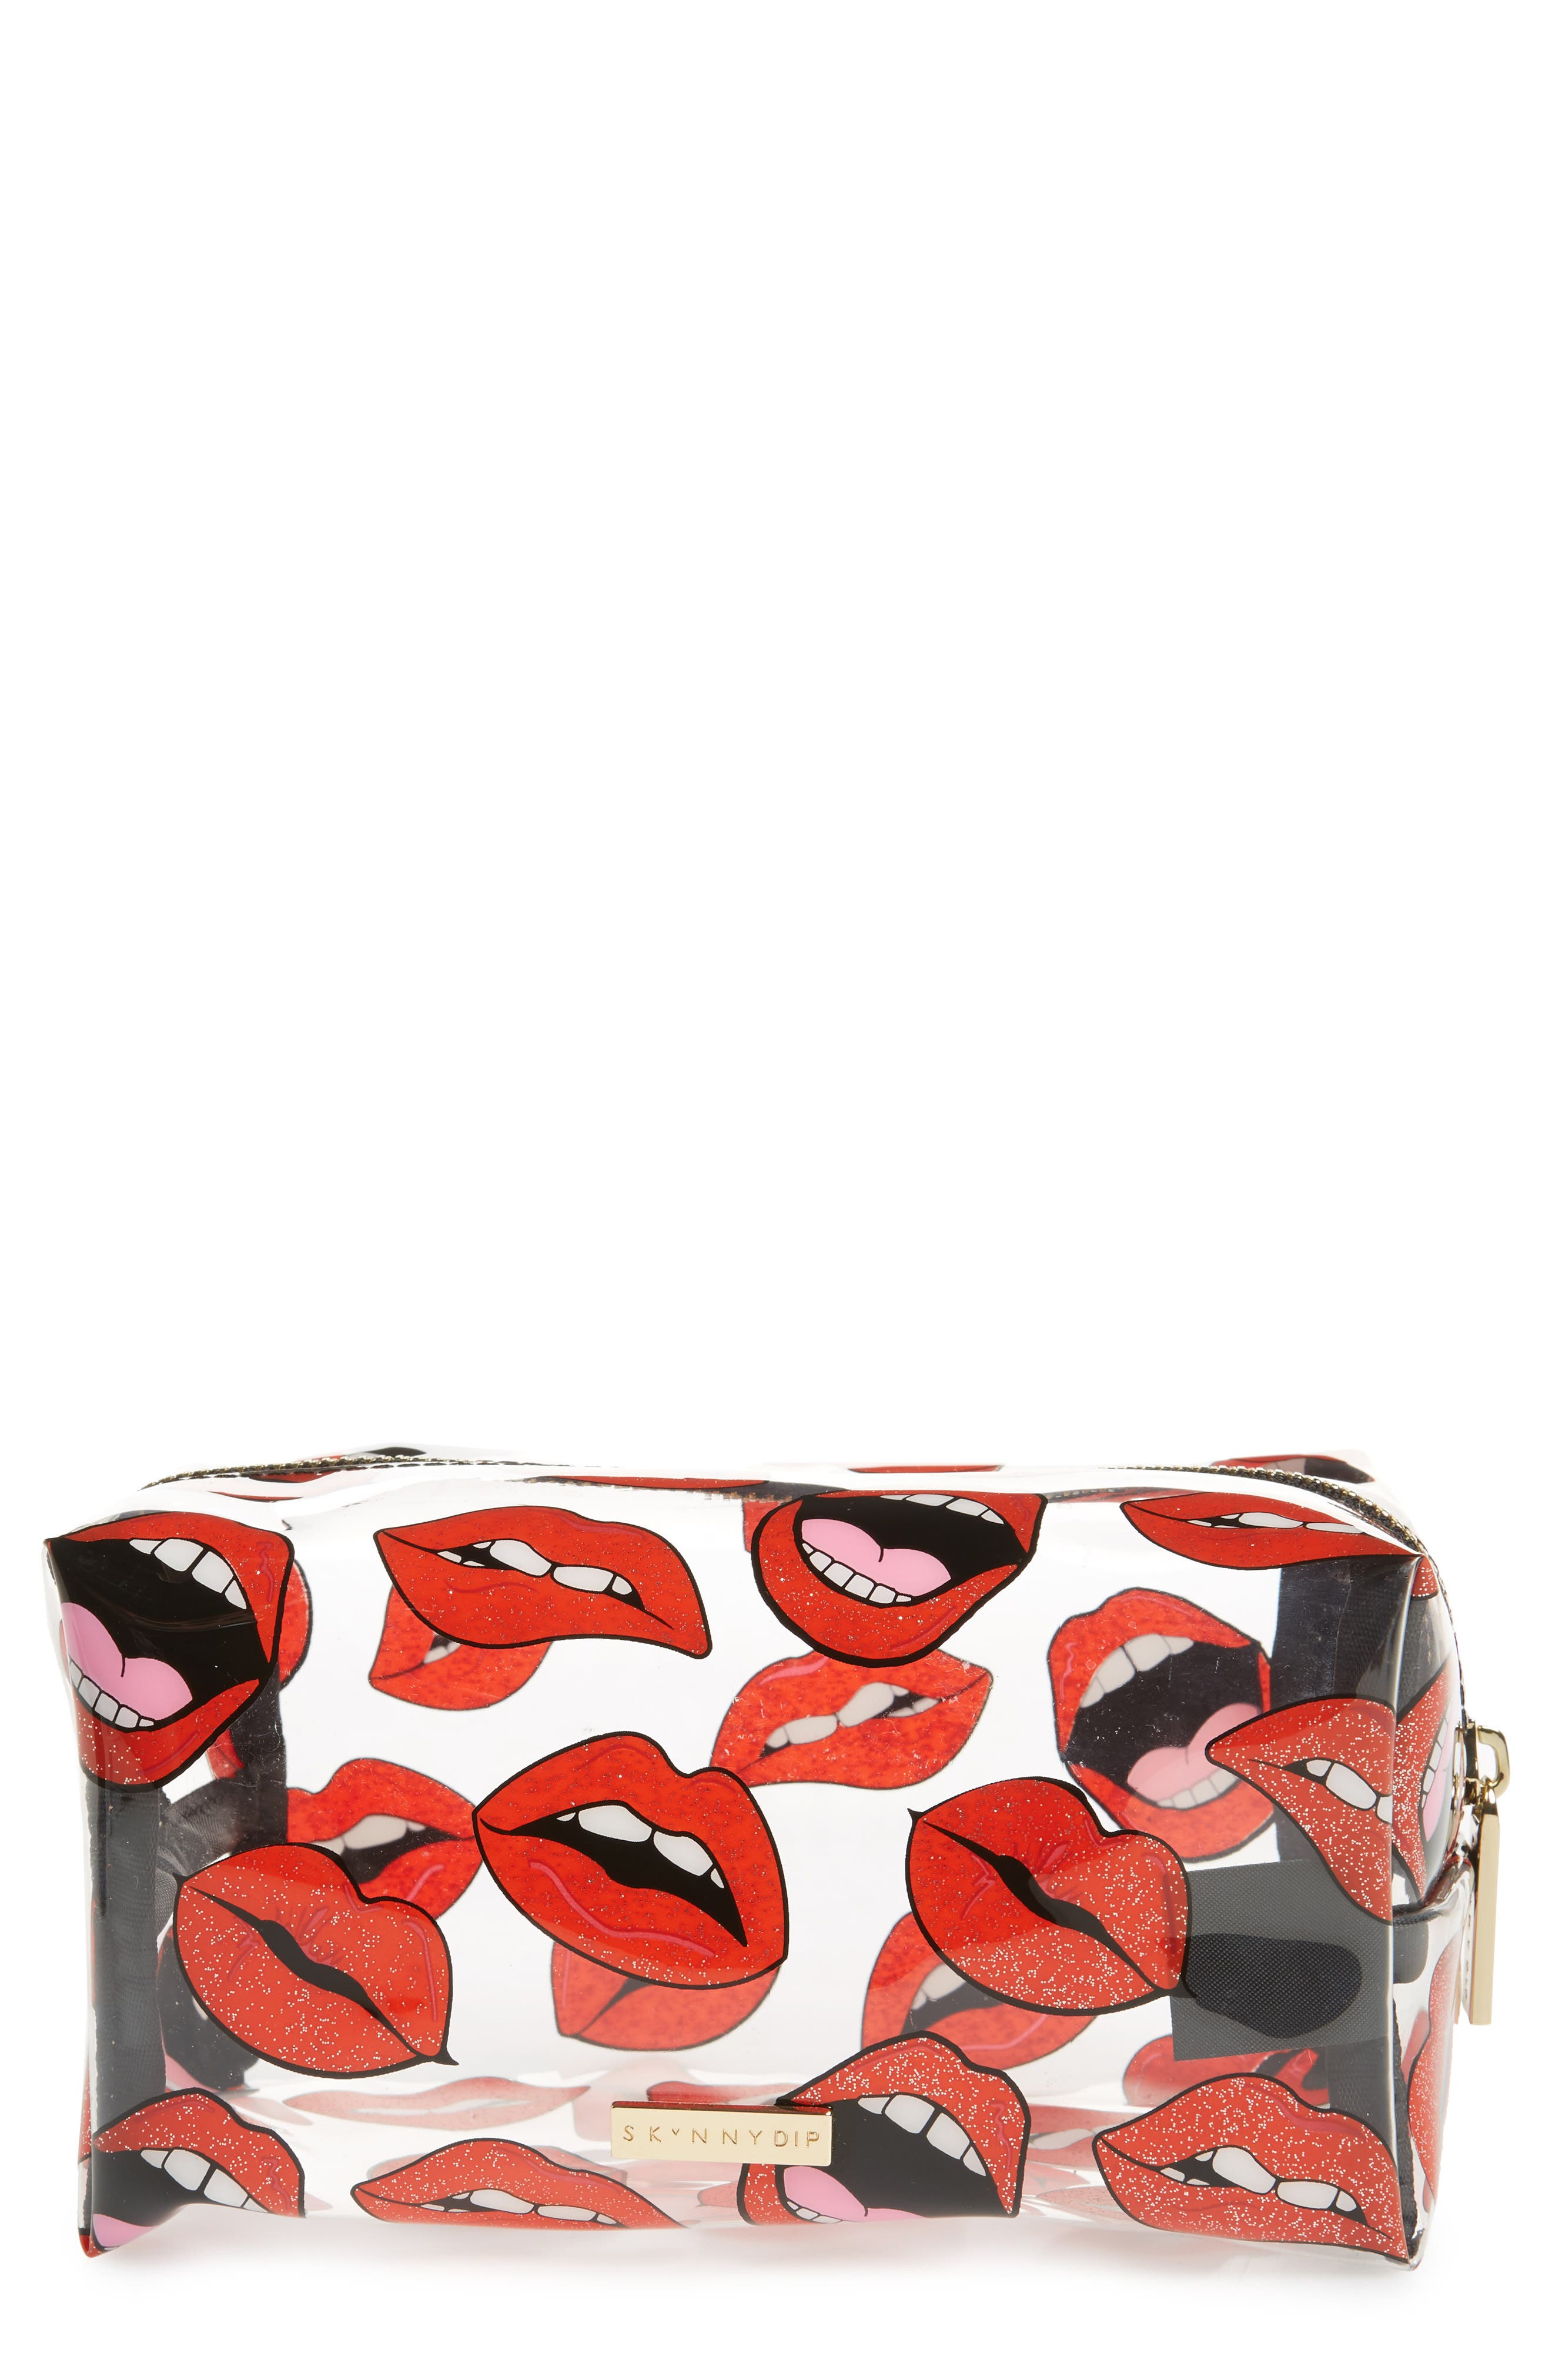 Main Image - Skinny Dip Lips & Glitter Case (Nordstrom Exclusive)